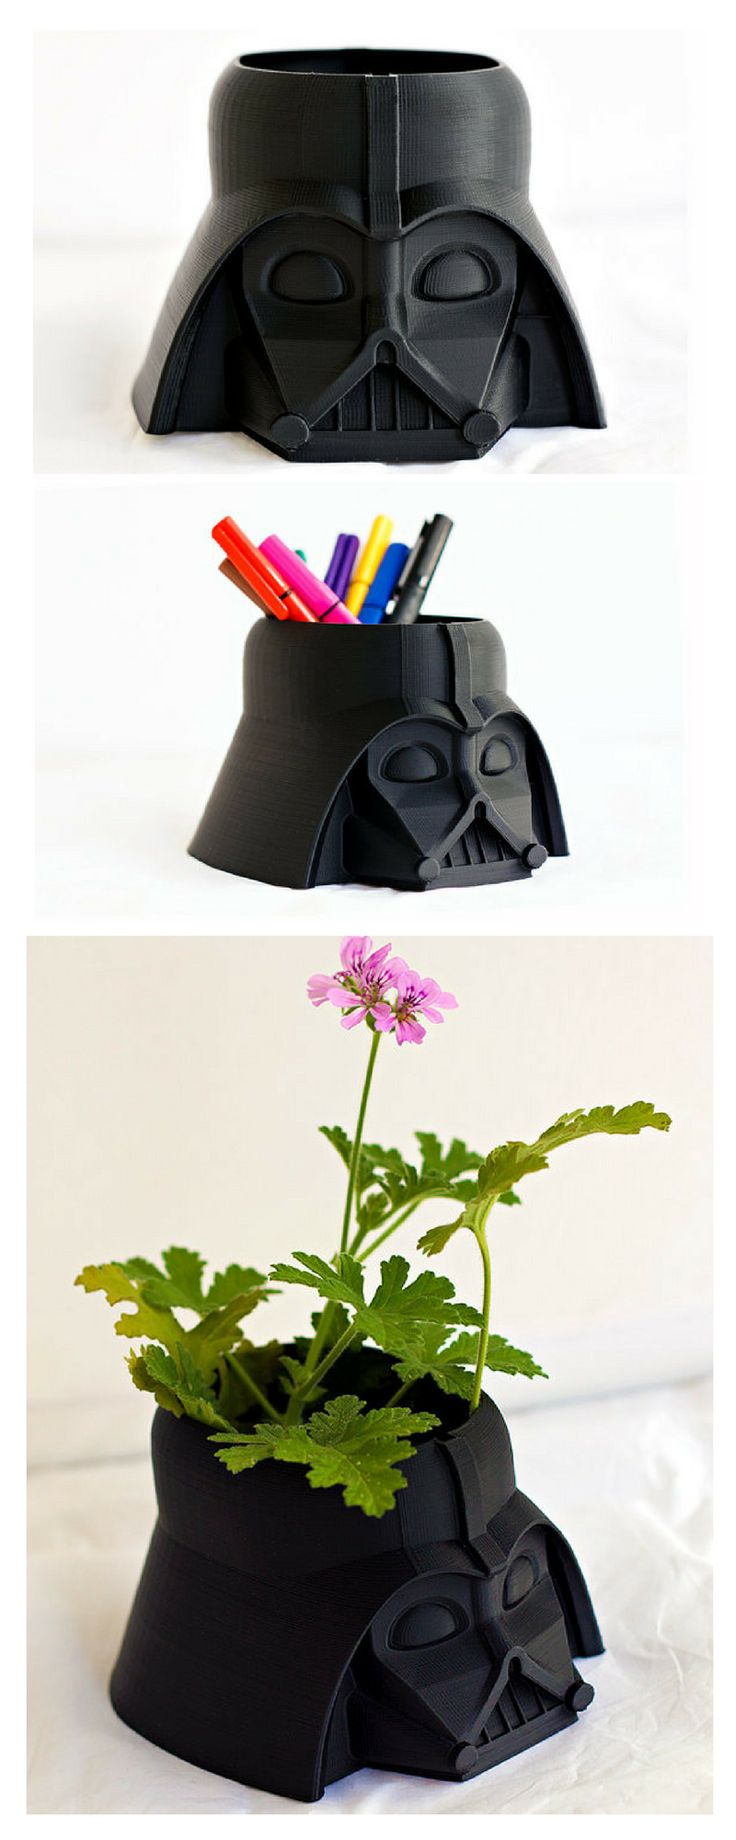 Darth Vader pot. You can use as a flower pot, pencil holder, toothbrush holder, in your kitchen. Cool gift idea for Star Wars fans. #starwars #darthvader #pot #darthvaderpot #roomdecor #geek #gift #commissionlink